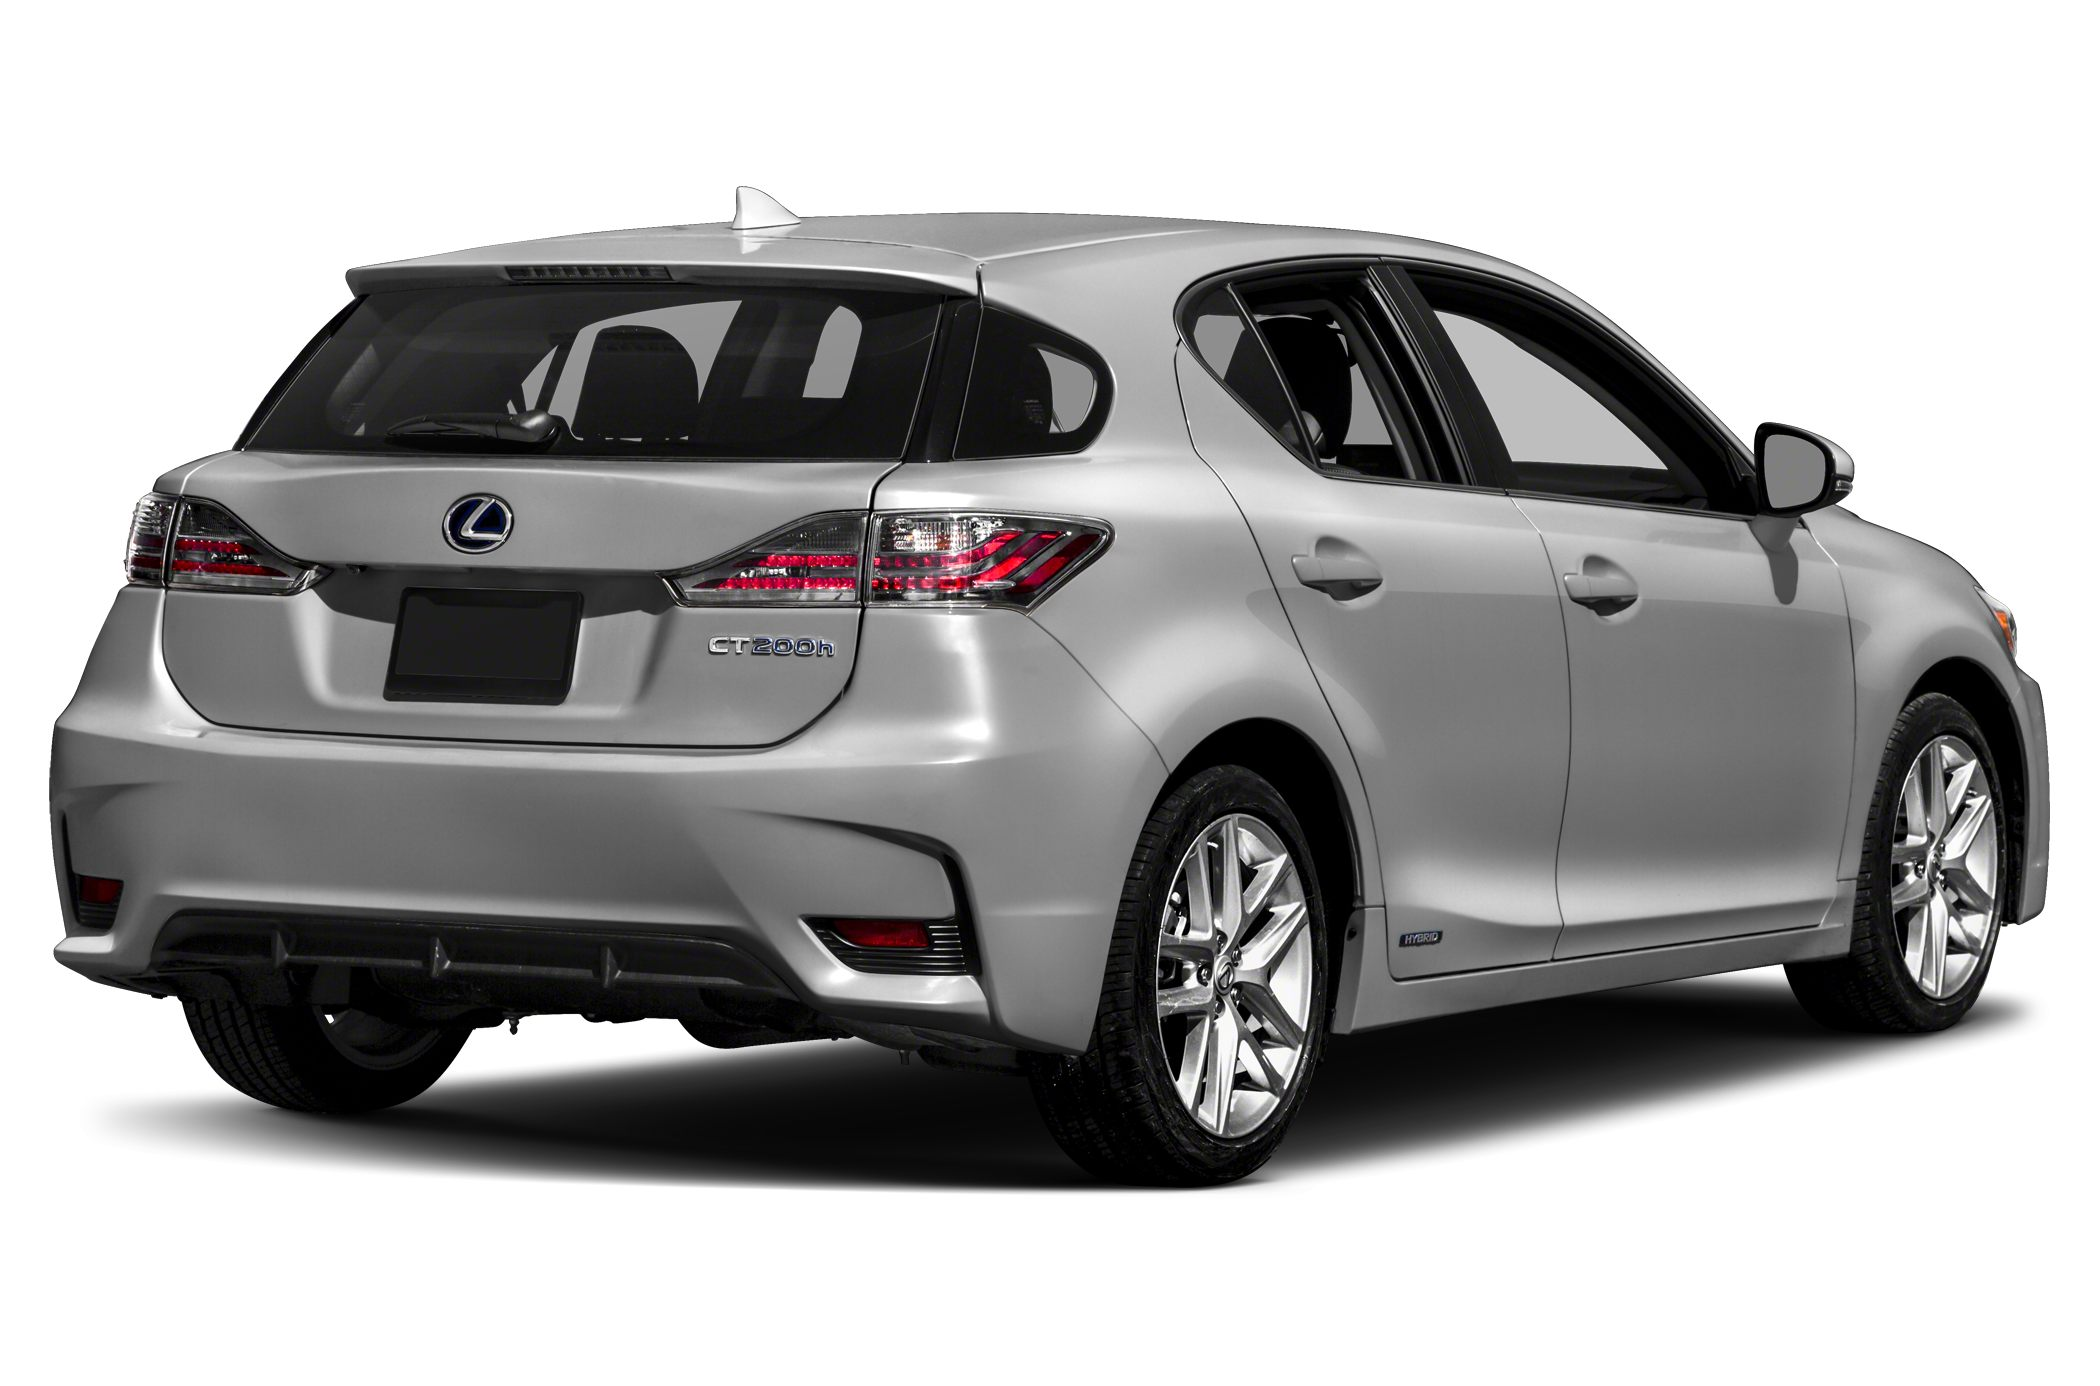 2017 Lexus CT 200h Base 4 Dr Hatchback at Lexus of Lakeridge